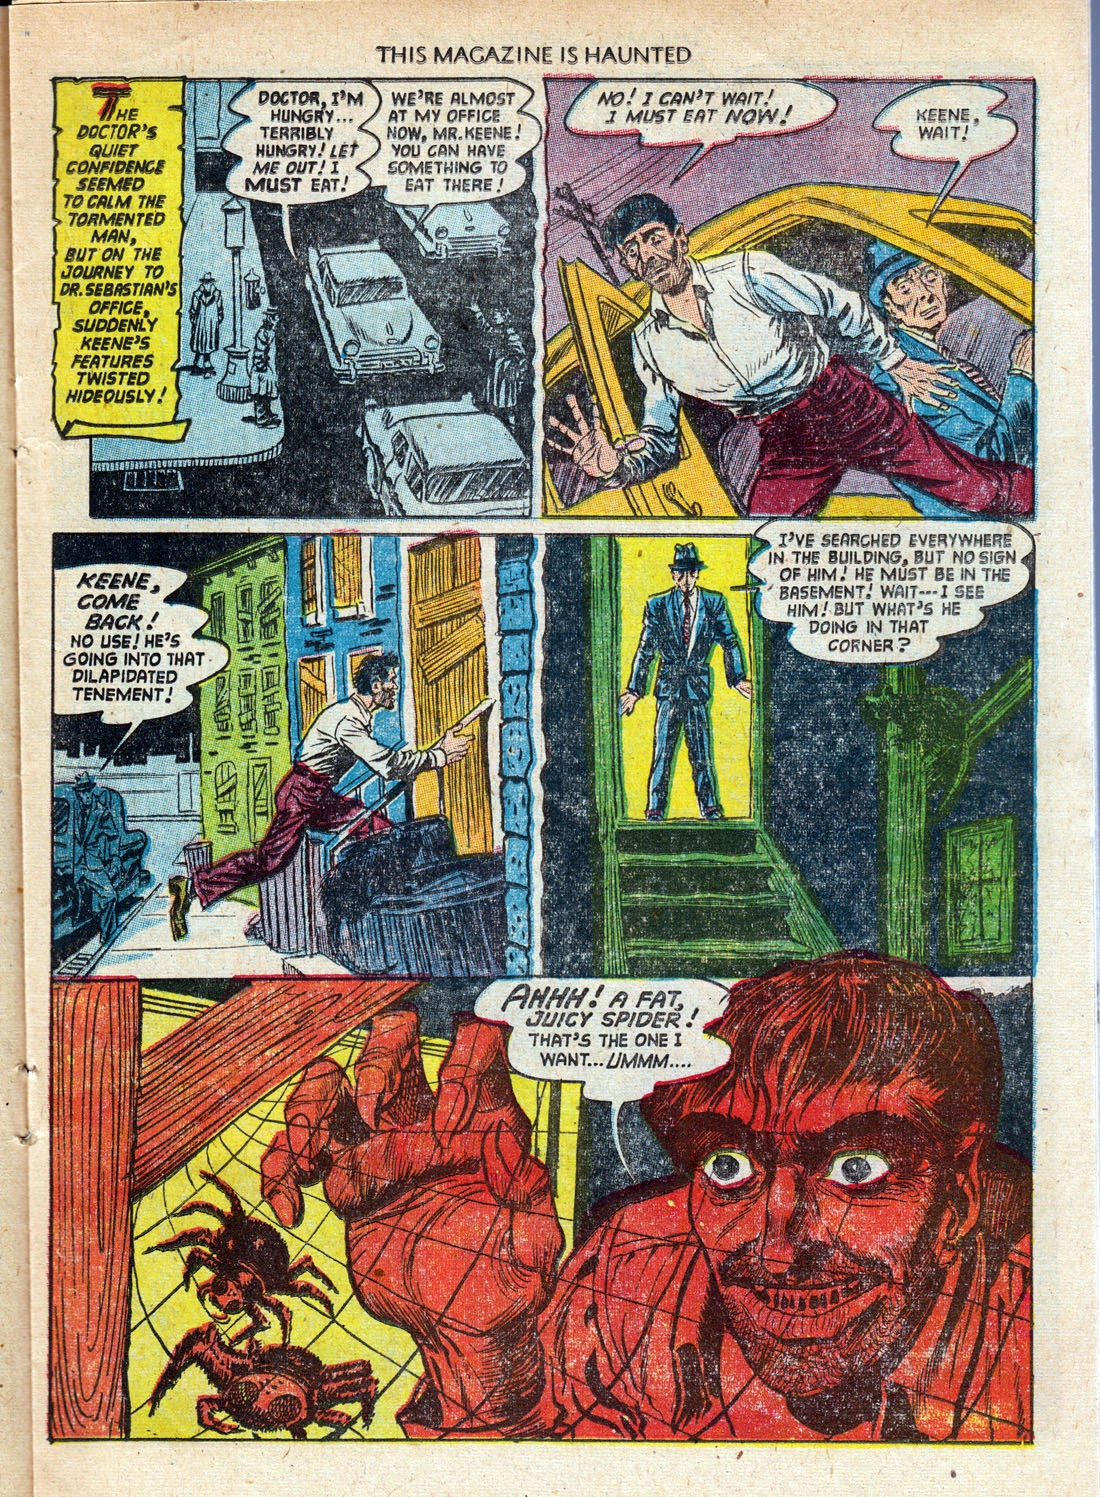 Read online This Magazine Is Haunted comic -  Issue #11 - 15